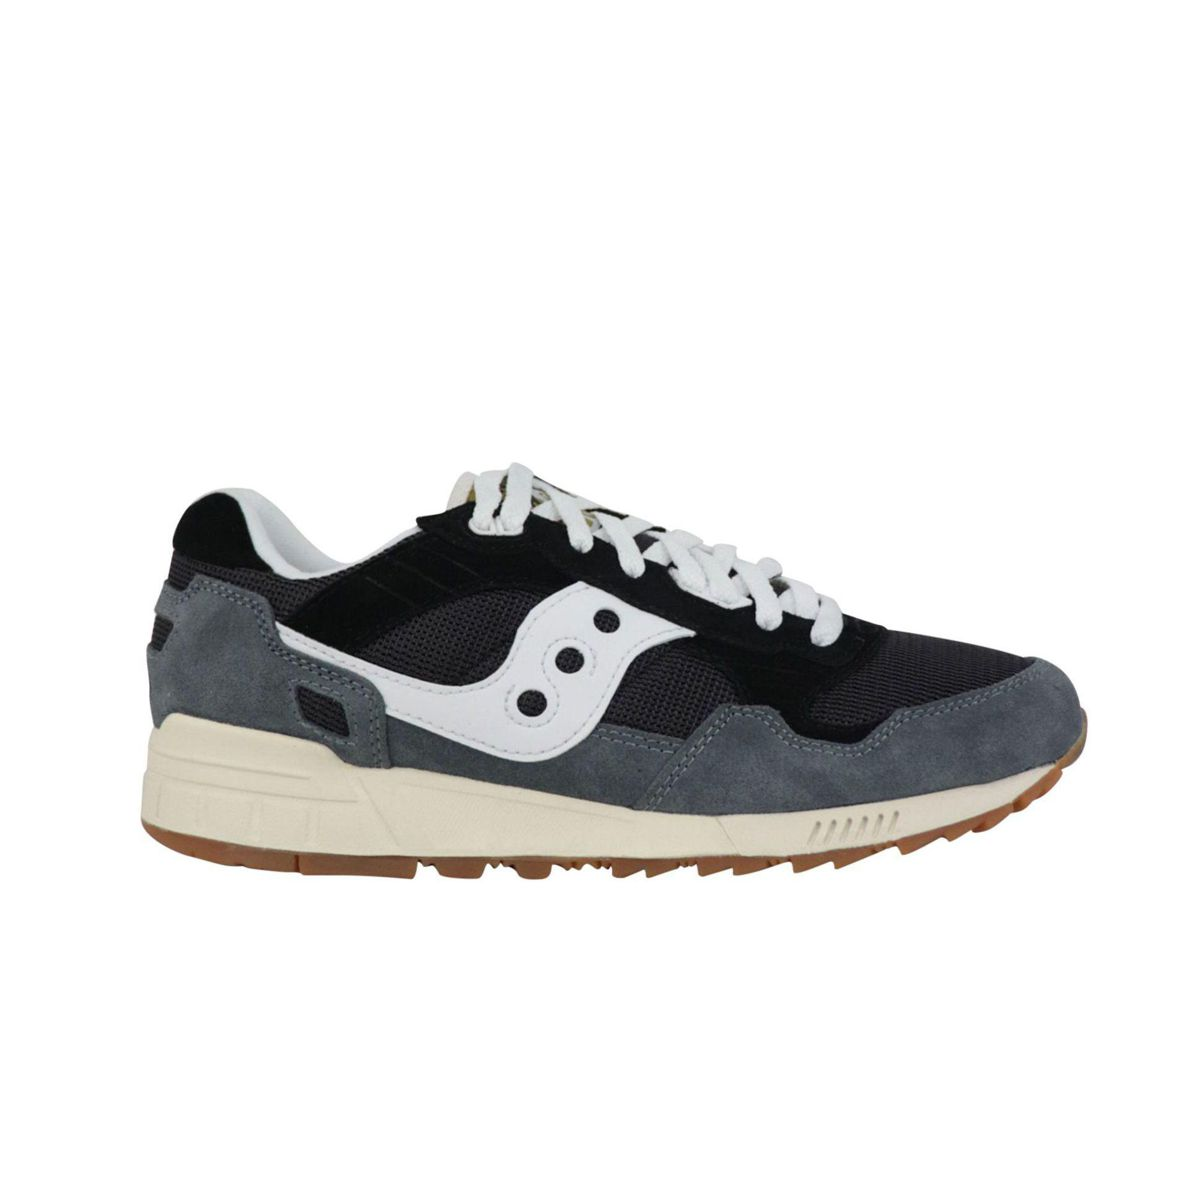 Shadow 5000 sneakers in suede and nylon Navy / gray Saucony